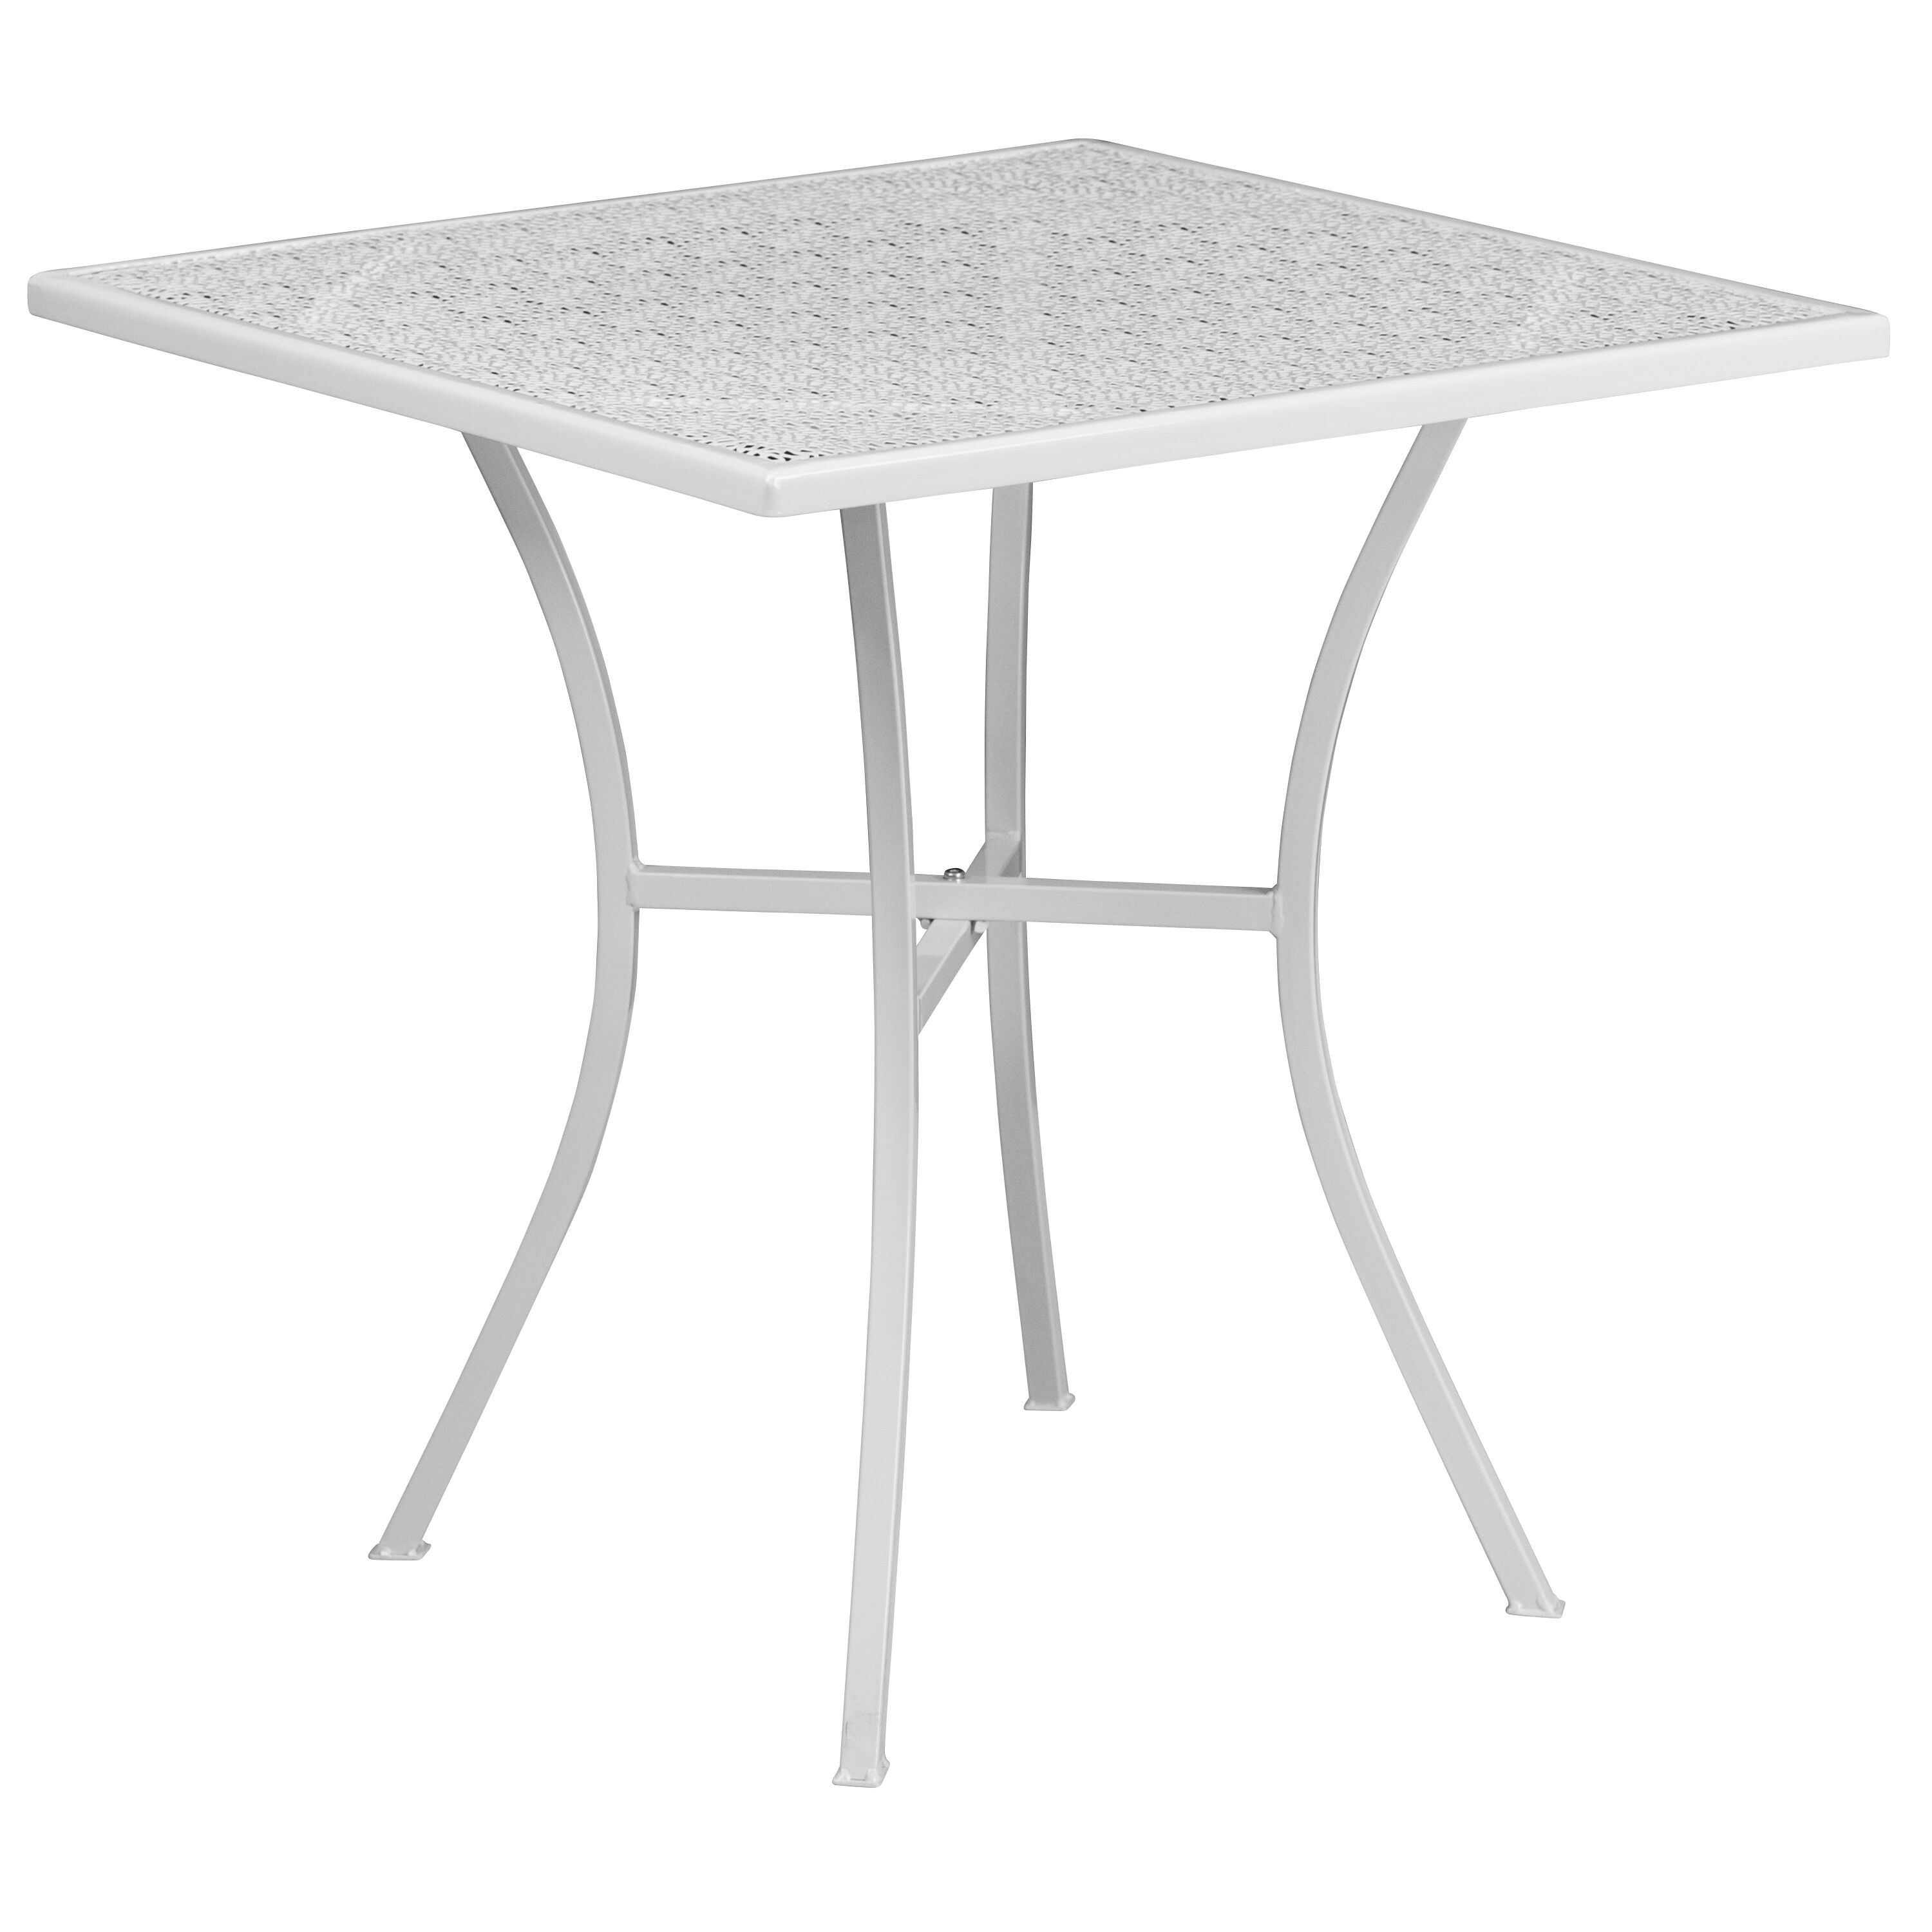 White Folding Patio Table,28SQ FLASH FURNITURE CO-1-WH-GG